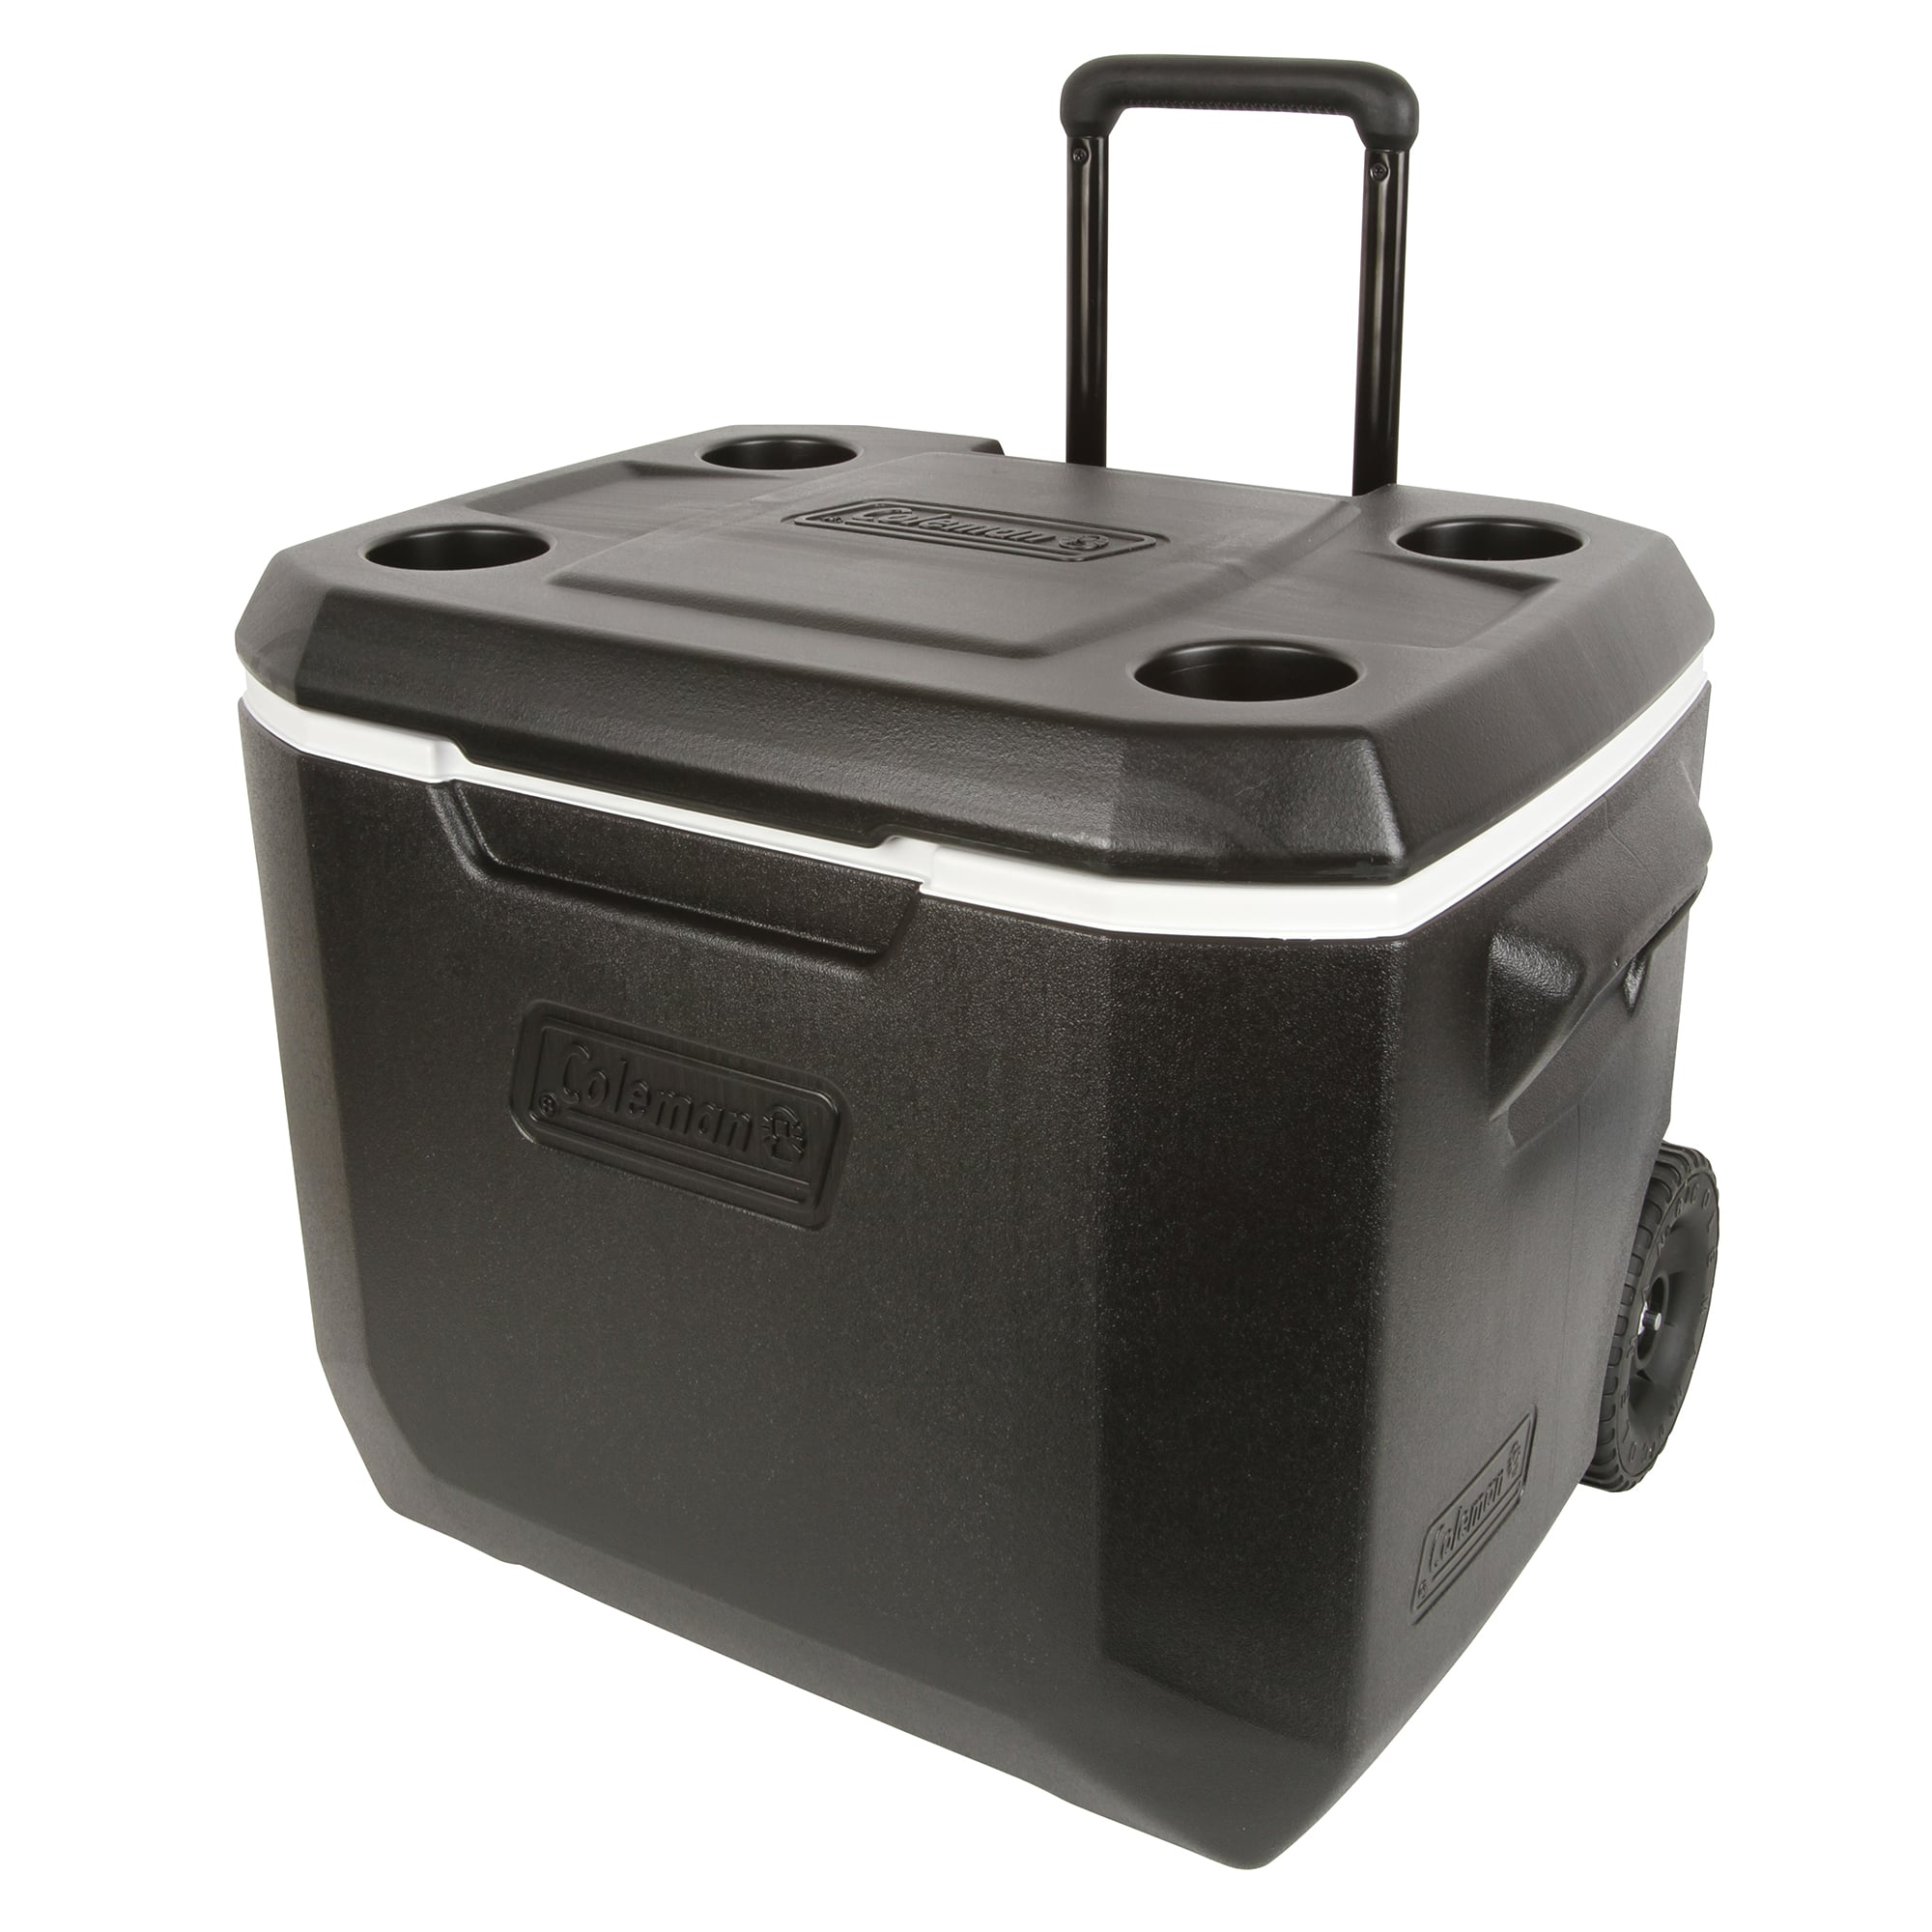 Coleman 50-Quart Xtreme 5-Day Heavy-Duty Cooler with Wheels $29.82